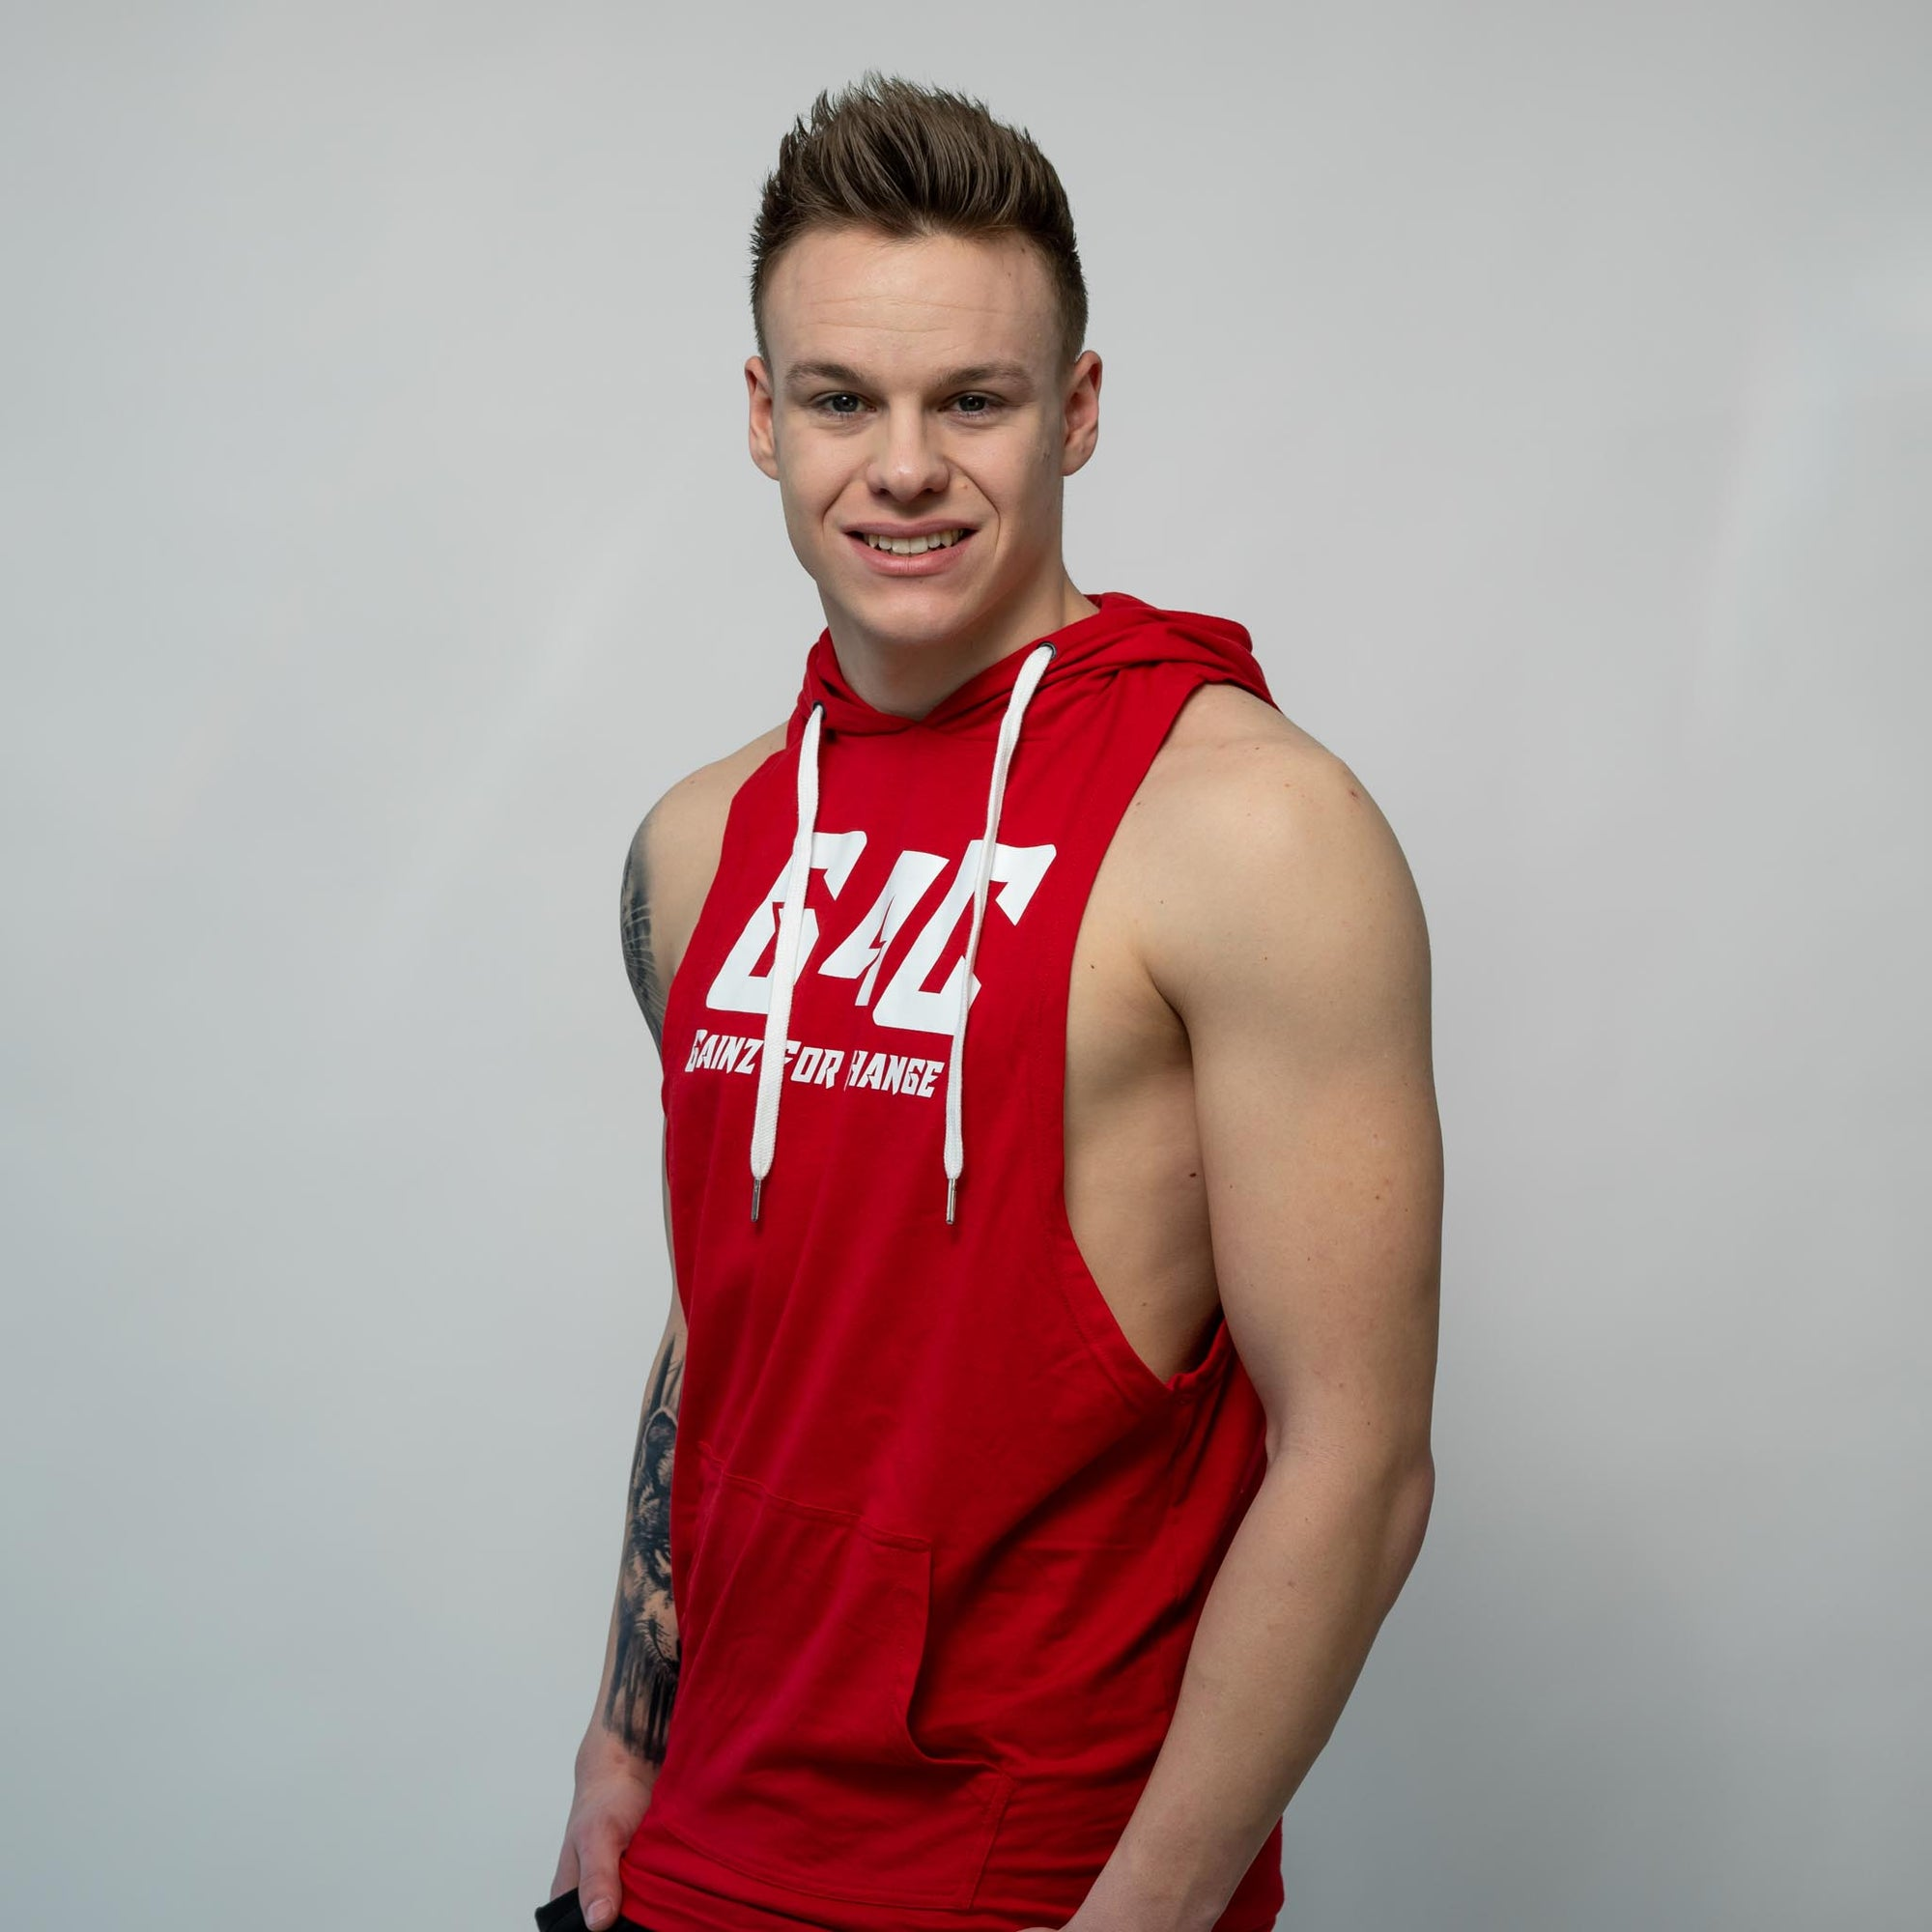 Gainz4Change Sleeveless Hoodie red - Gainz4Change